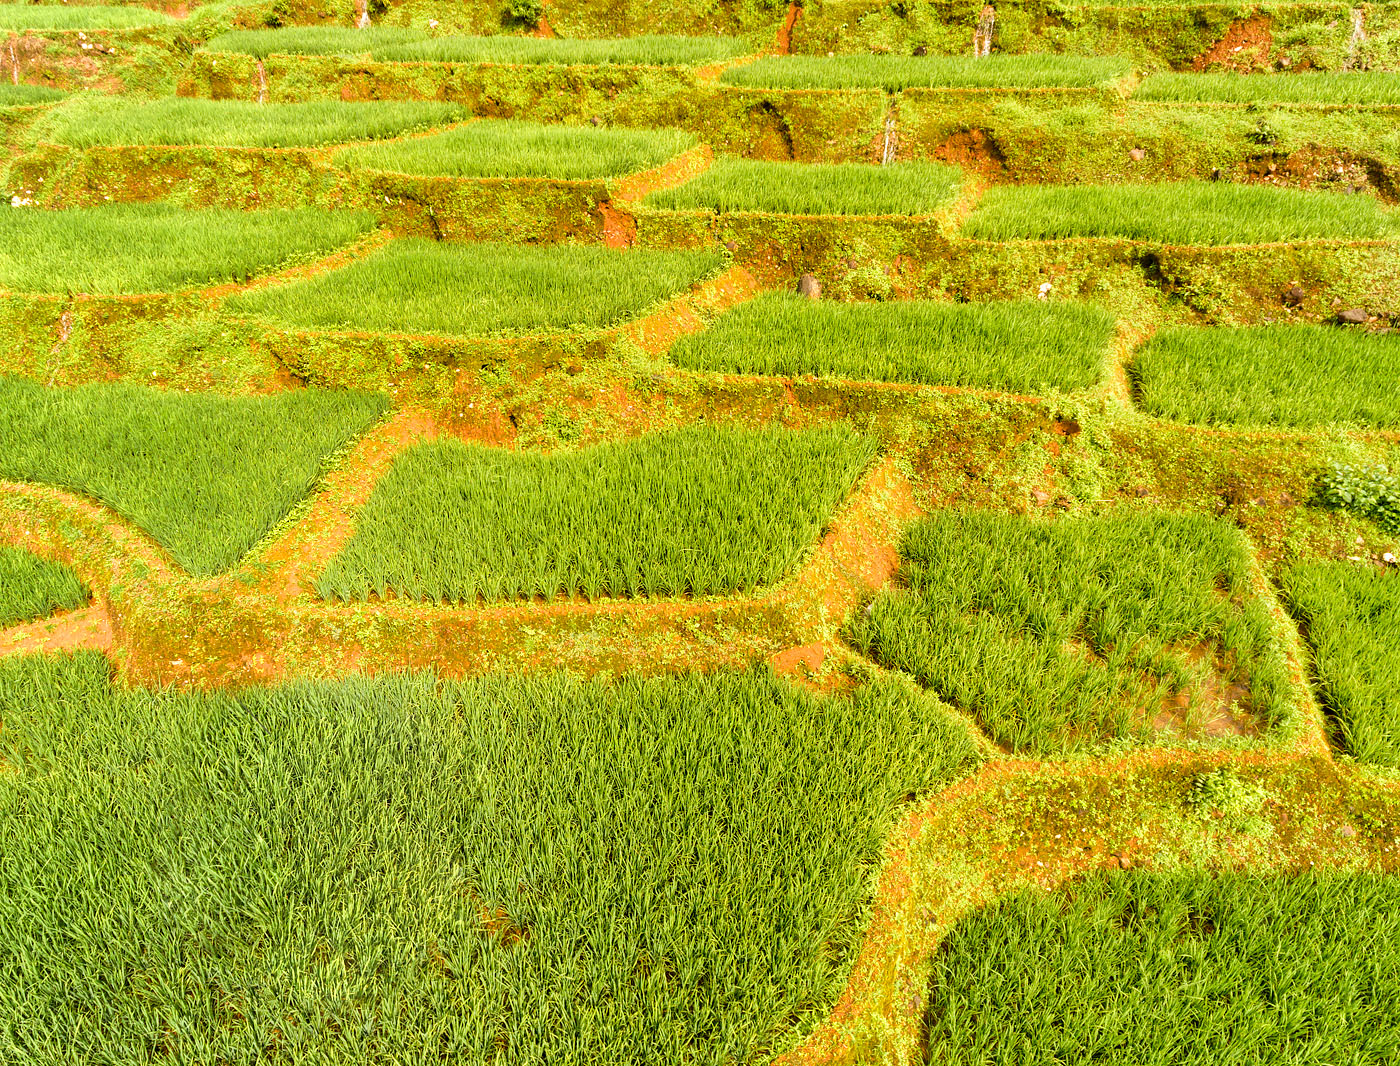 Terraced fields in Khola, Canacona, Goa